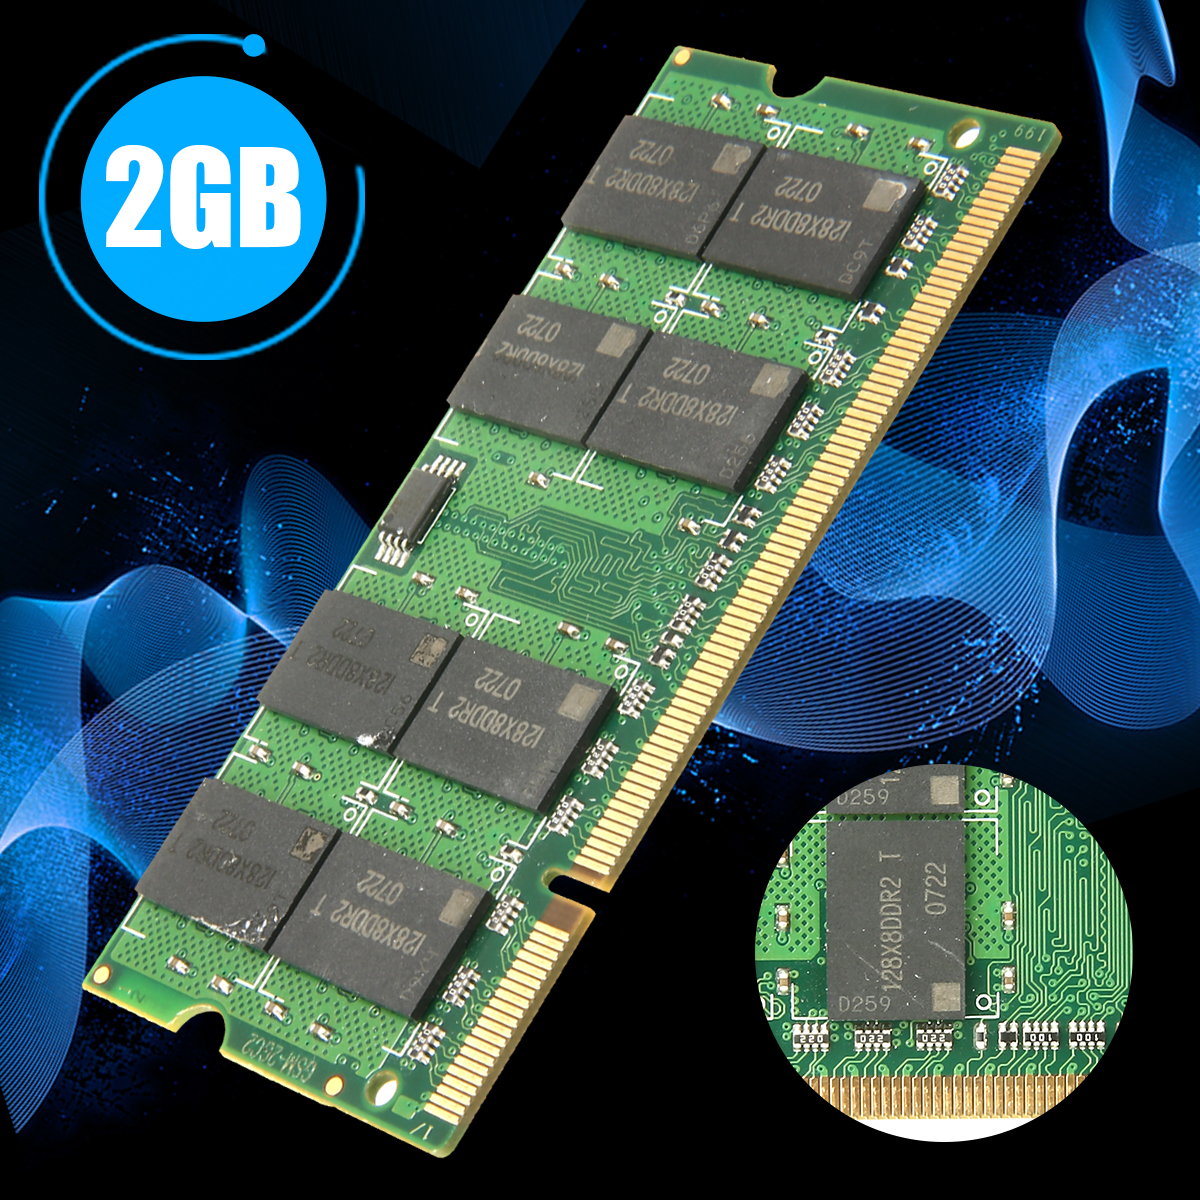 New Arrival 1pc 2GB PC2-6400 DDR2-800MHz Ram Non-ECC CL5 Laptop 200pin SODIMM Memory Rams For Computer Parts